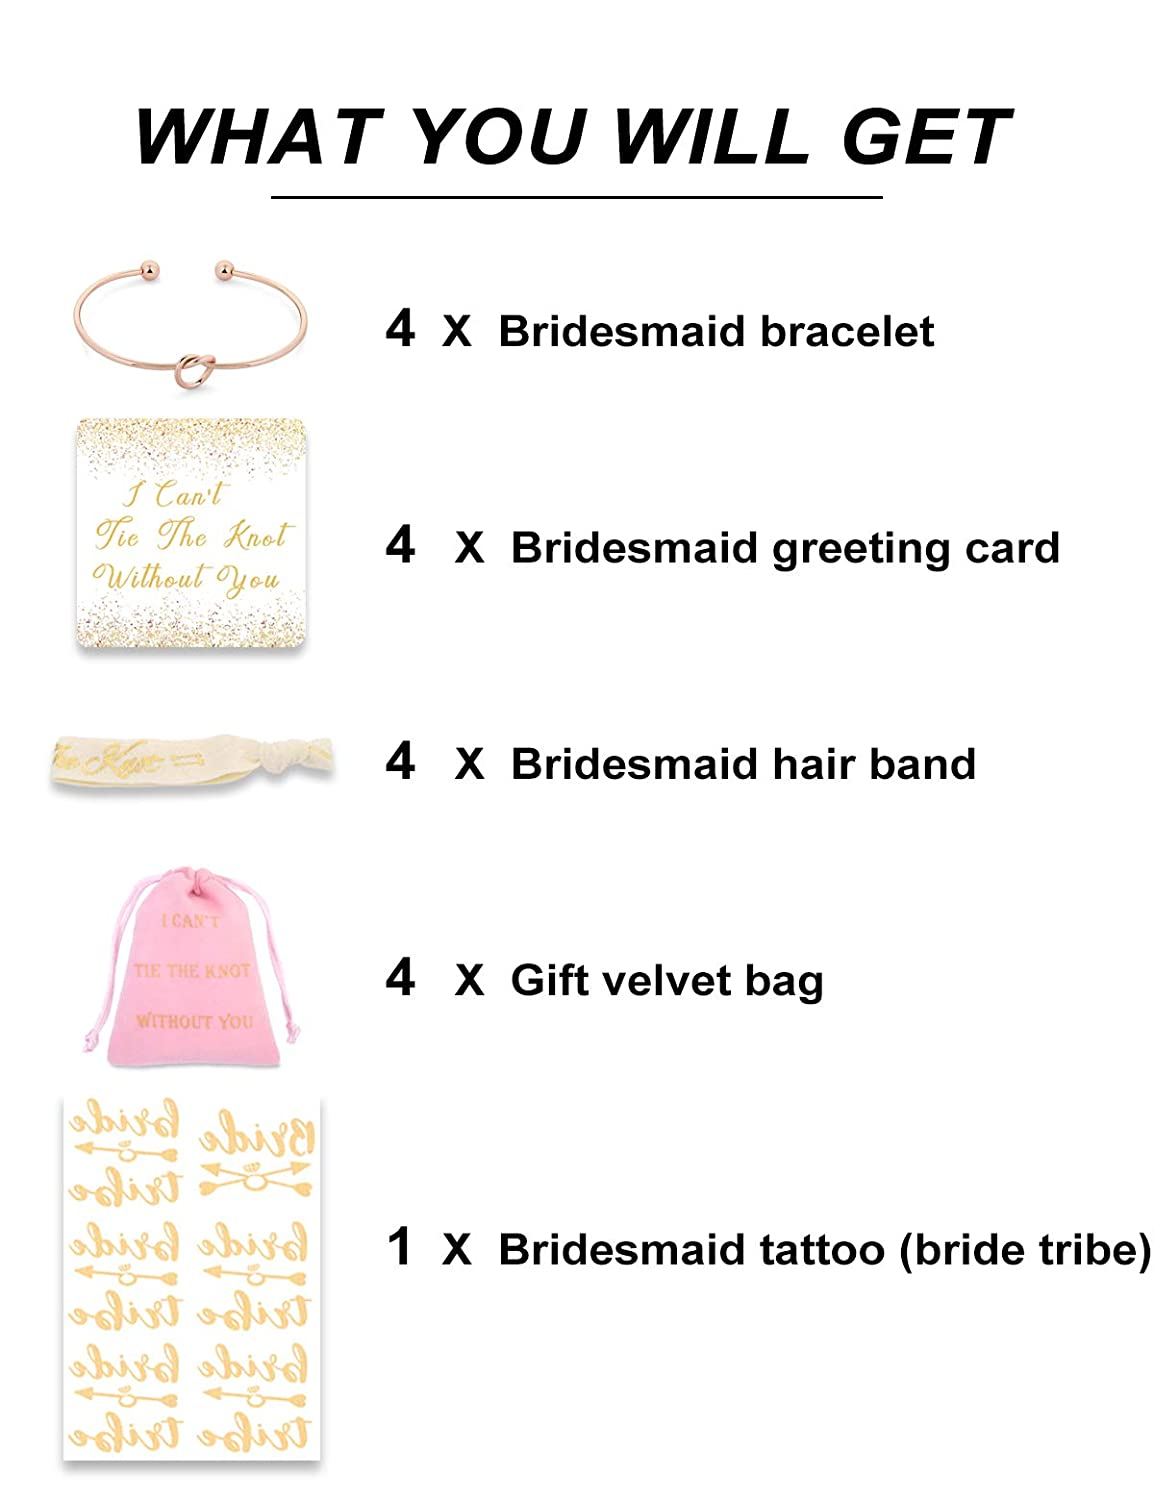 5 6 4 Bridesmaid Gifts I Cant Tie The Knot Without You Must Have Bracelets with Cards -Set of 1 7